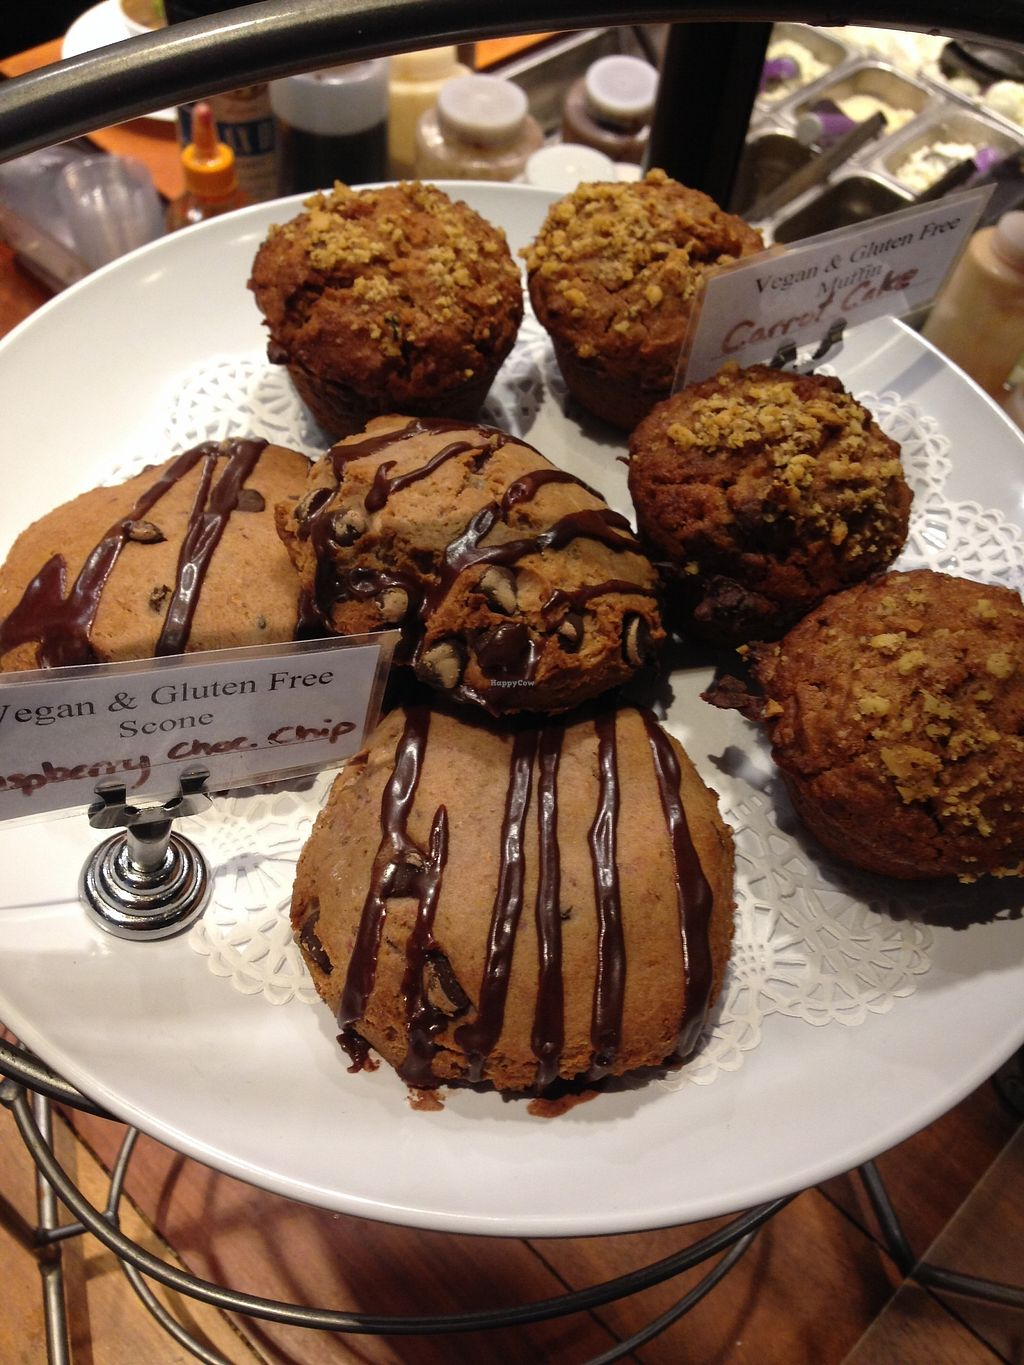 "Photo of New Moon VT  by <a href=""/members/profile/BarbaraMorningstar"">BarbaraMorningstar</a> <br/>Vegan chocolate scones  <br/> February 15, 2018  - <a href='/contact/abuse/image/32840/359533'>Report</a>"